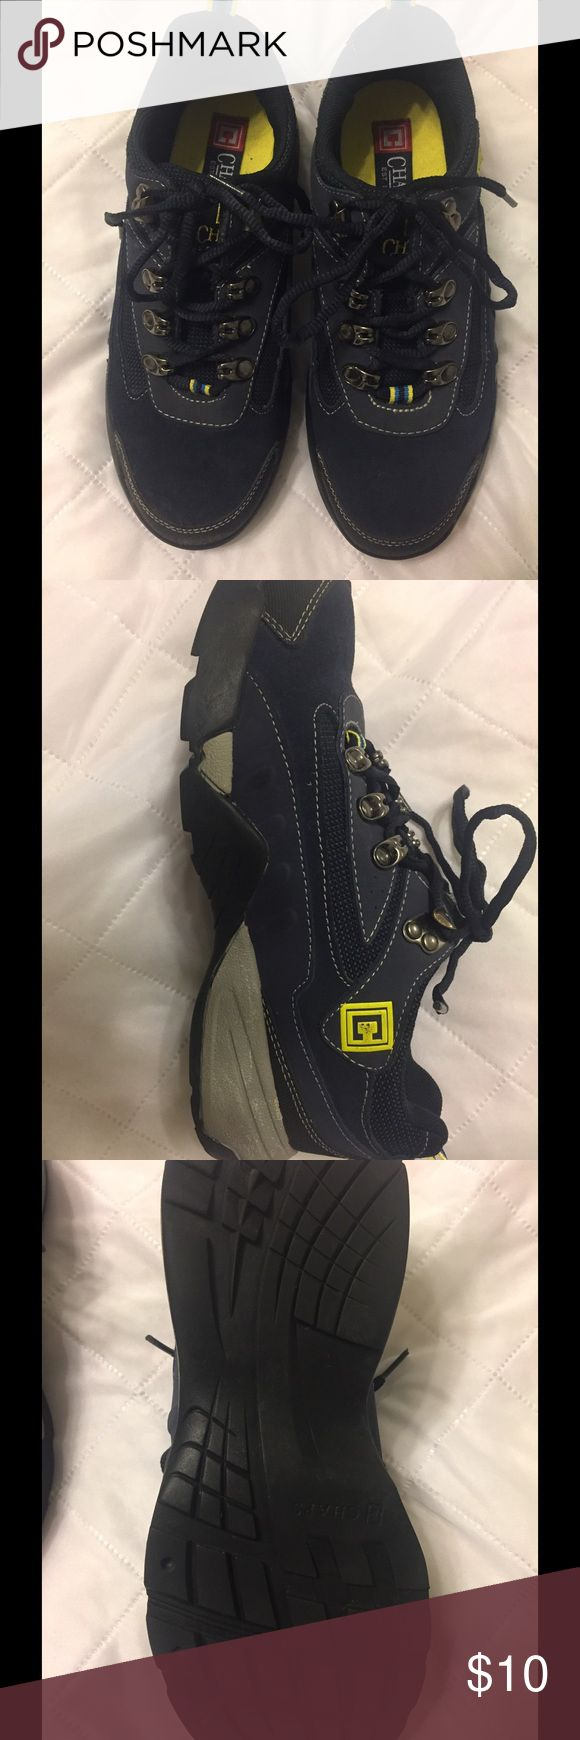 Chaps thick soled shoes Navy blue hiking/tenner shoe. They are very thick soled and heavy Chaps Shoes Sneakers